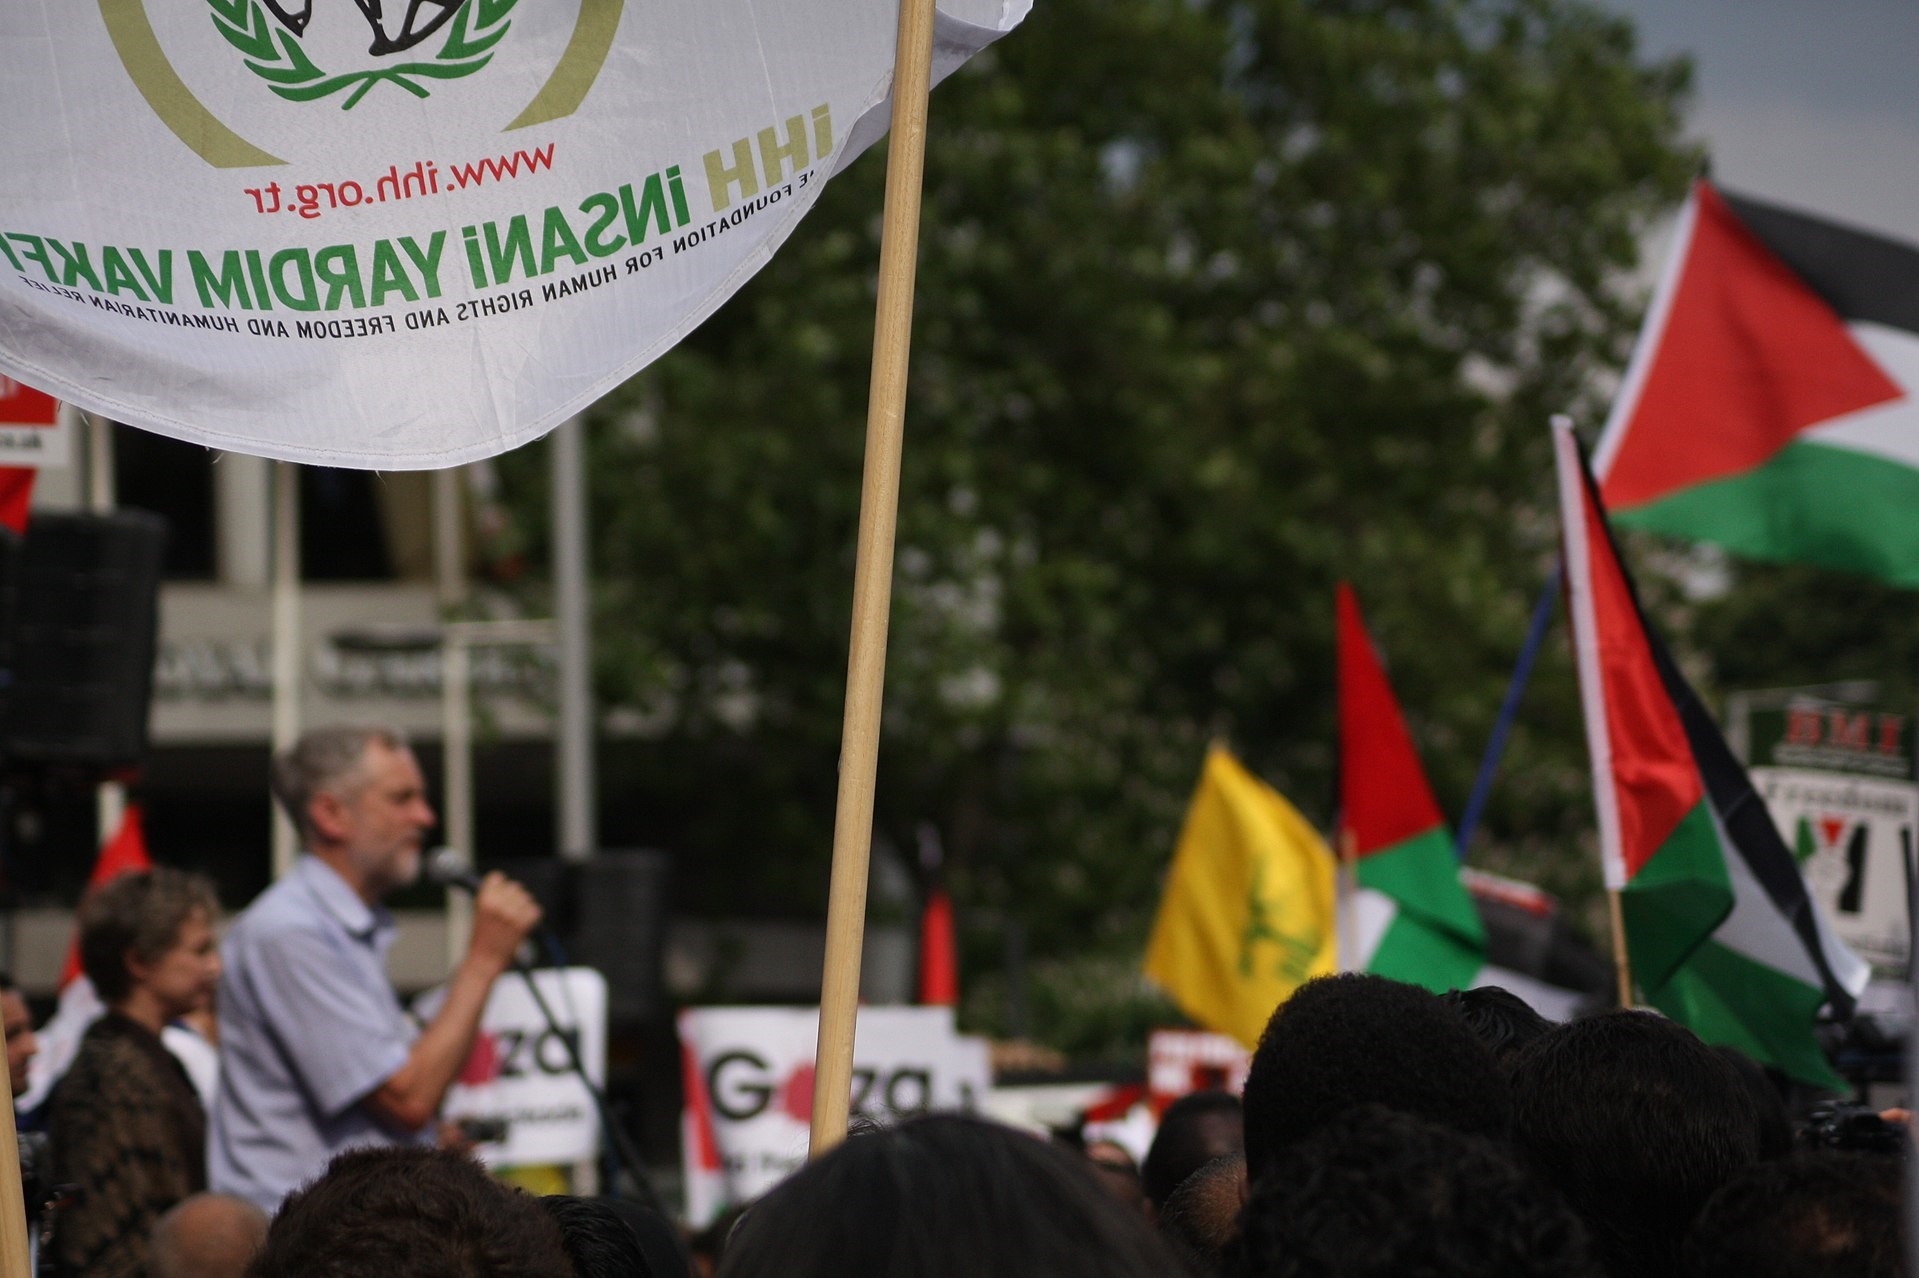 Jeremy Corbyn addressing a Rage Against Israel demonstration in London